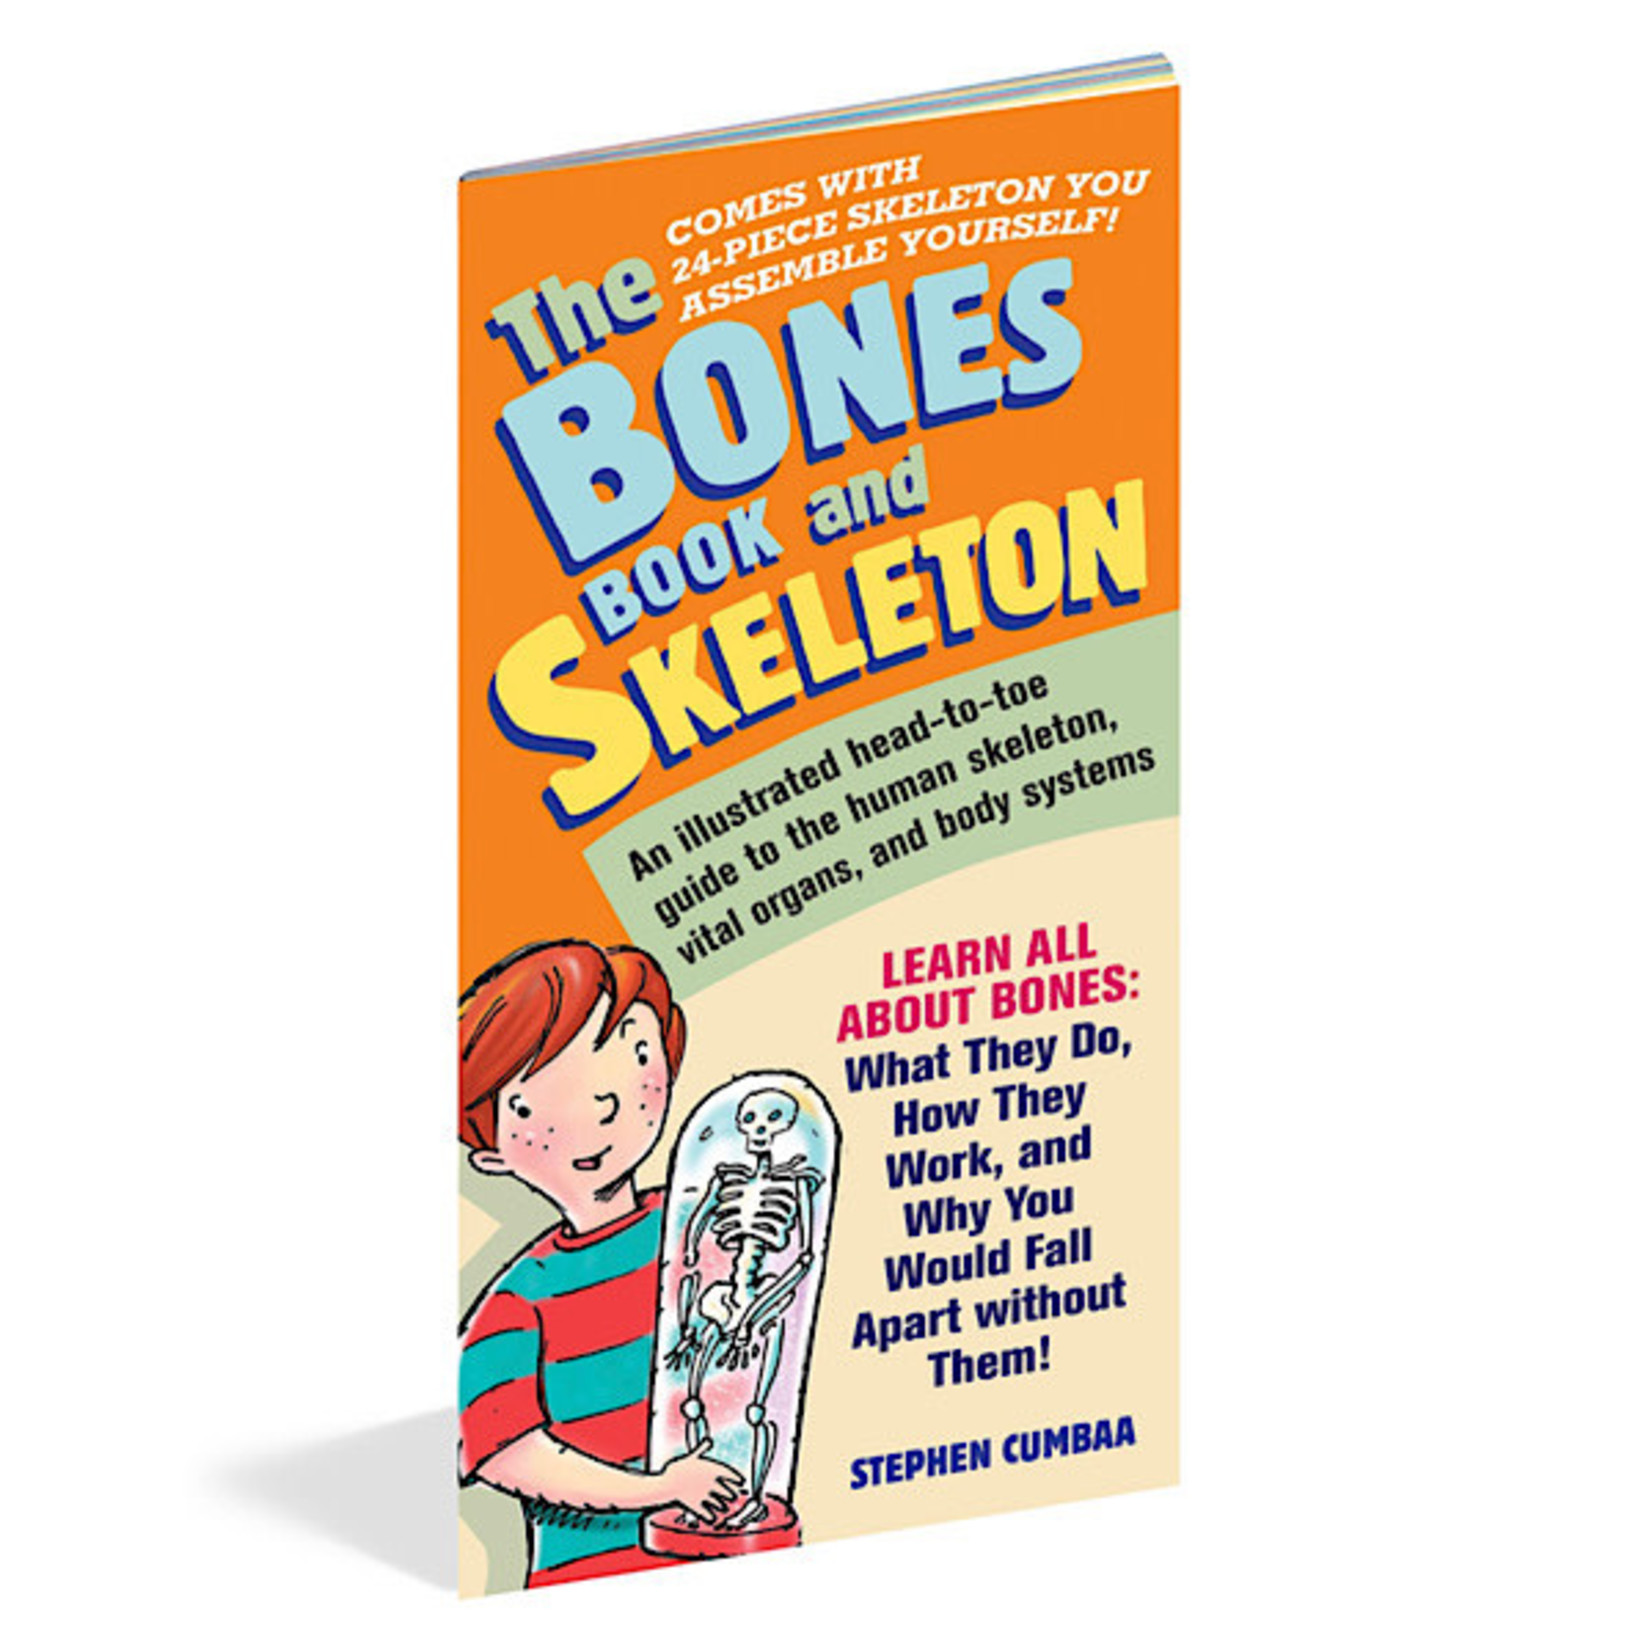 Book - The Bones Book And Skeleton